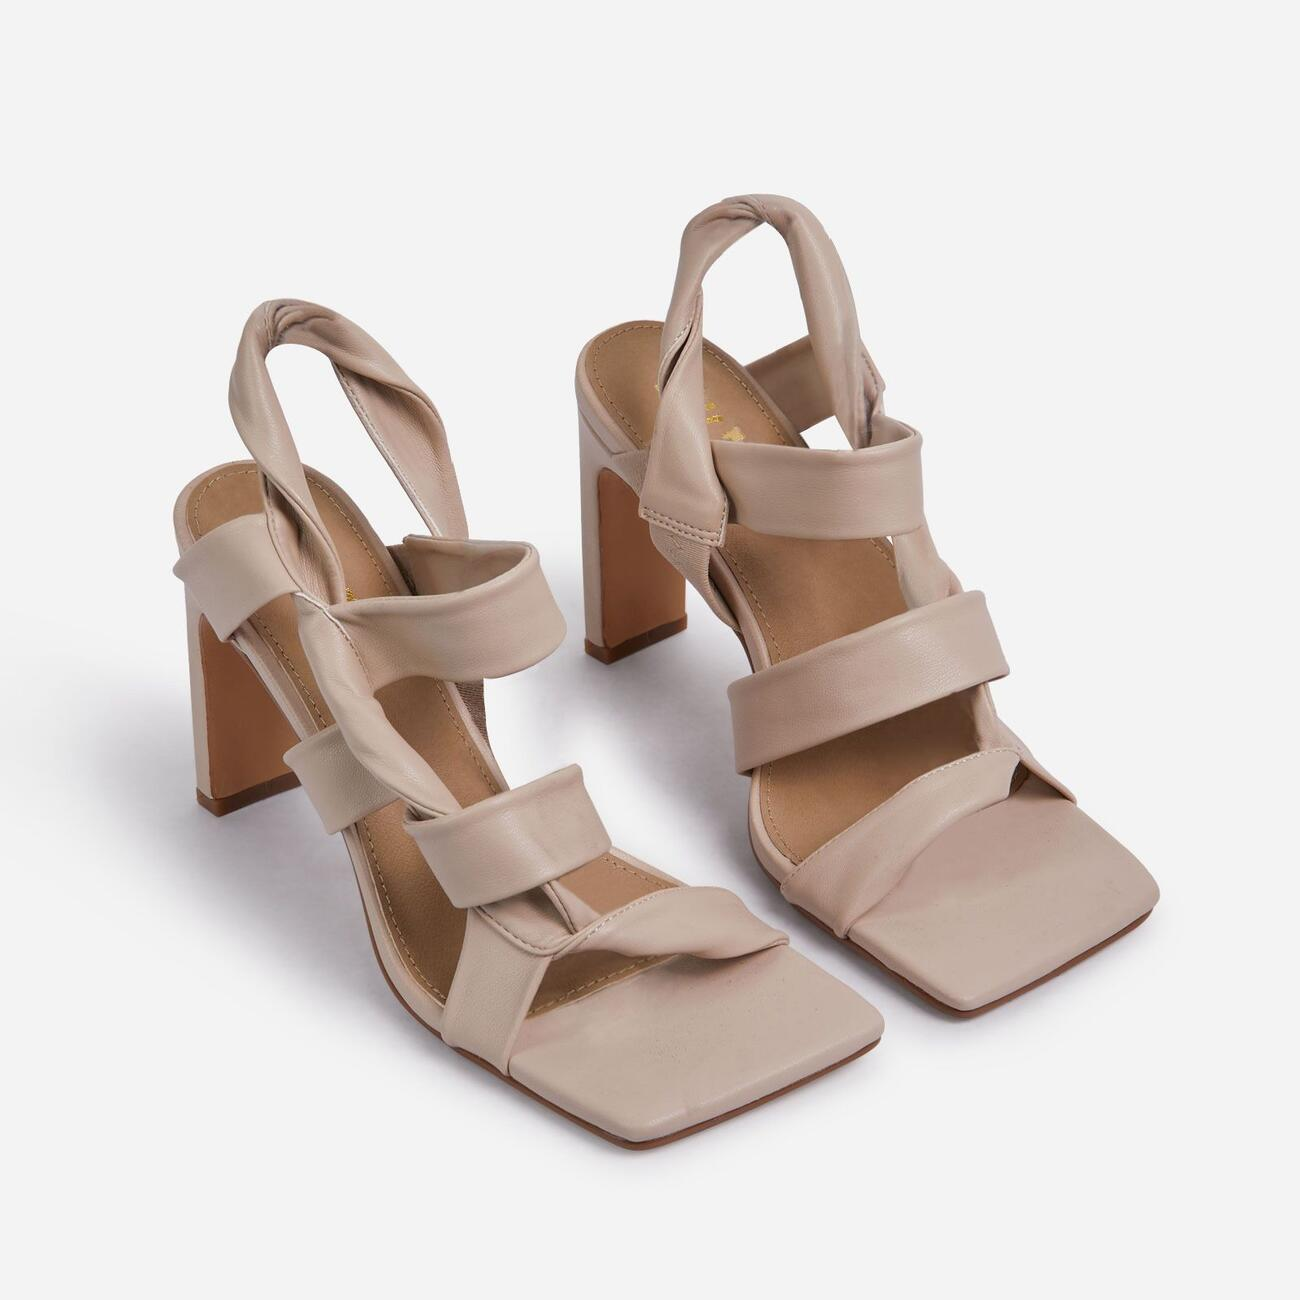 Ripple Strappy Caged Square Toe Heel Mule In Nude Faux Leather Image 2